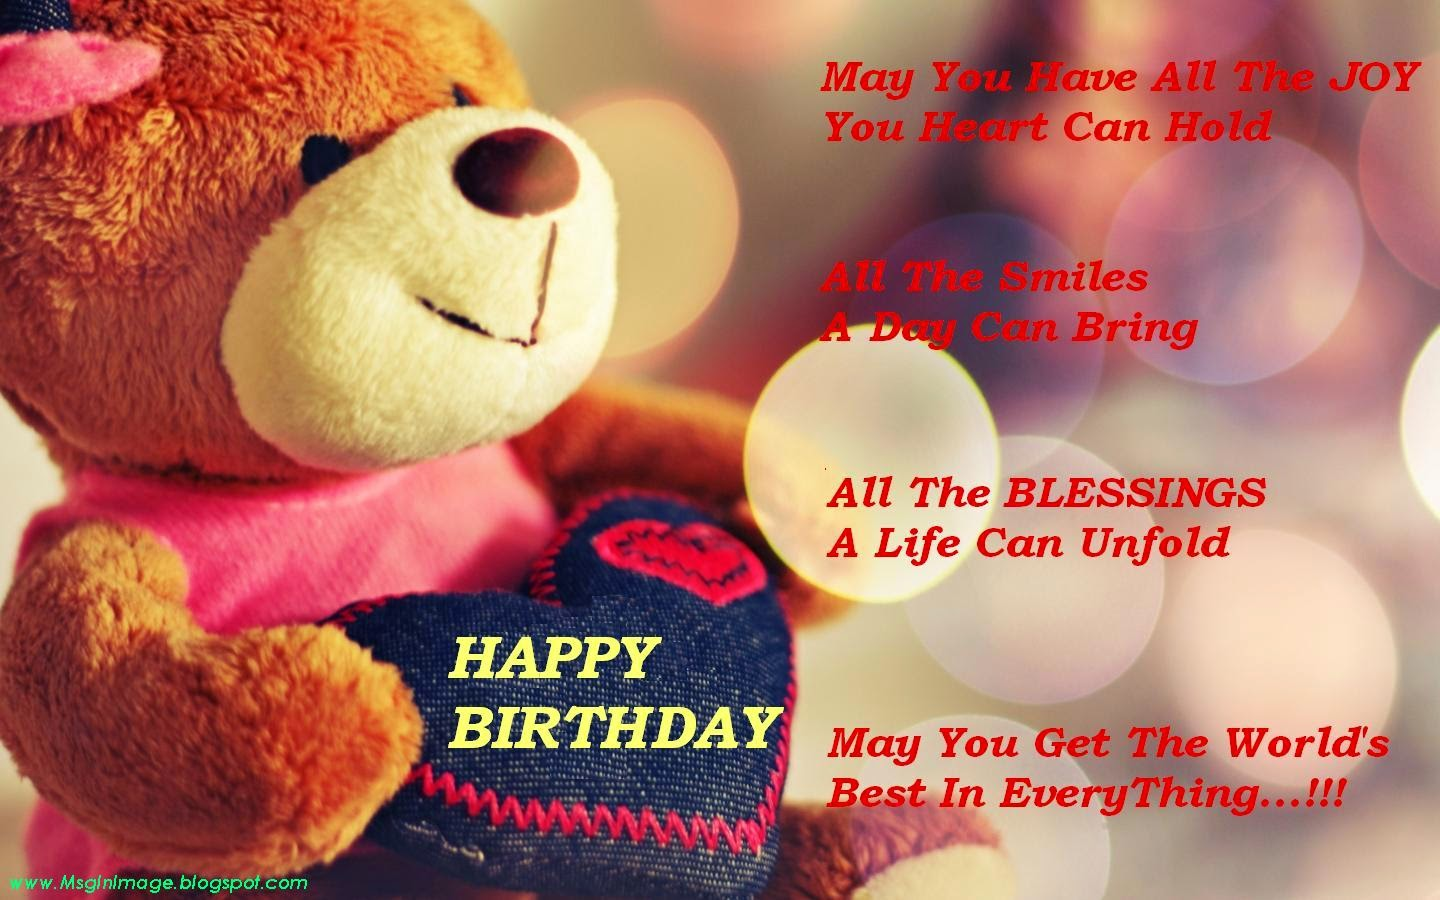 Funny Birthday Quotes For Your Girlfriend : Happy birthday wishes messages for boyfriend and girlfriend daily roabox